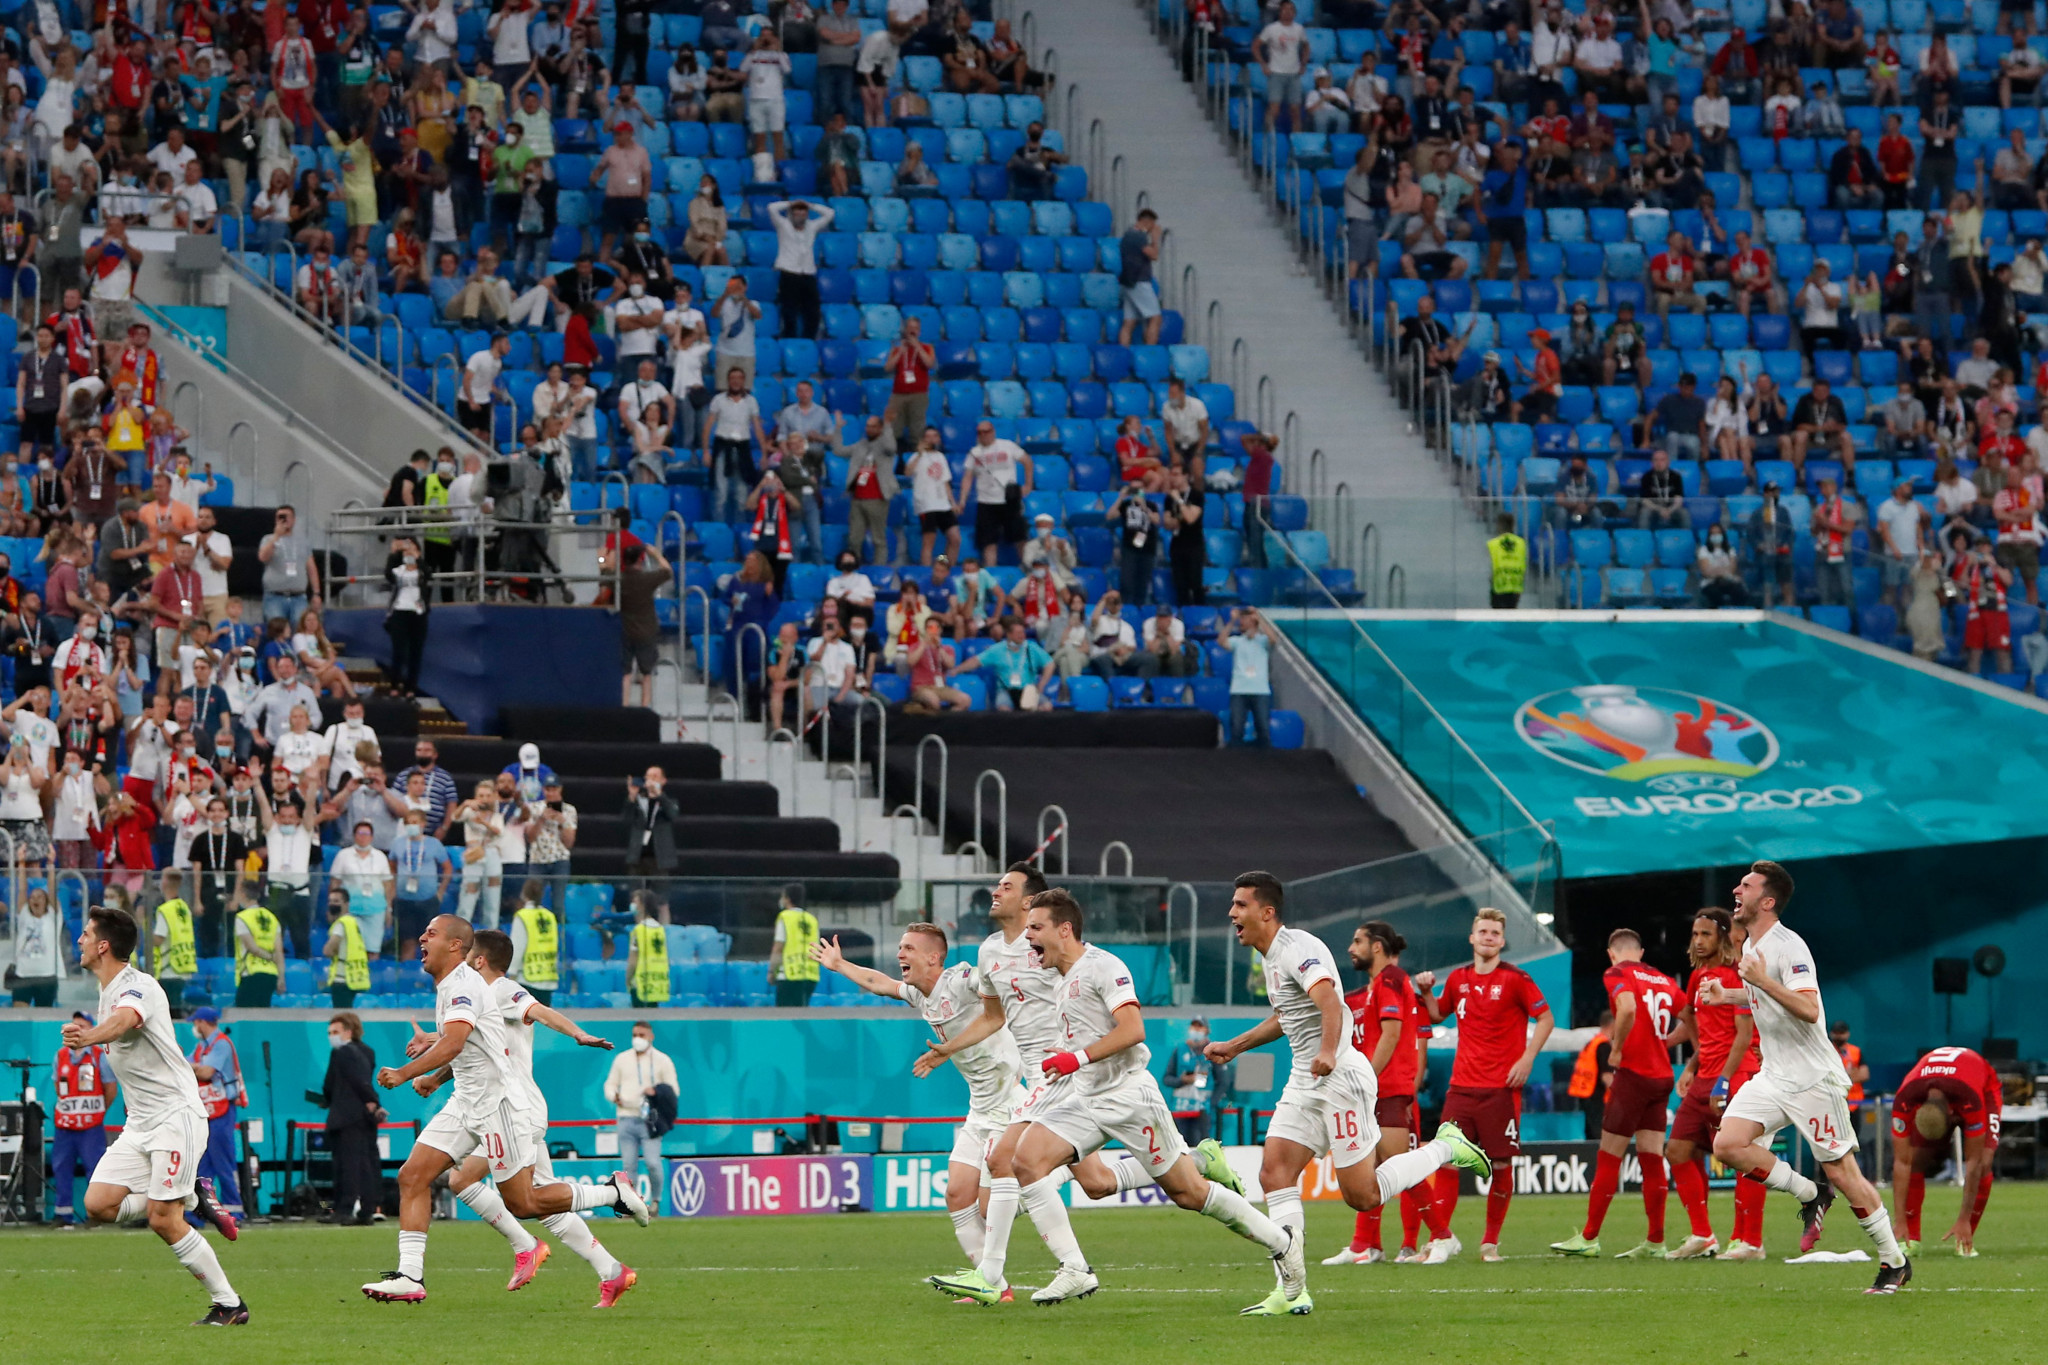 Spain survive shoot-out to set up semi-final versus Italy, who dump out Belgium